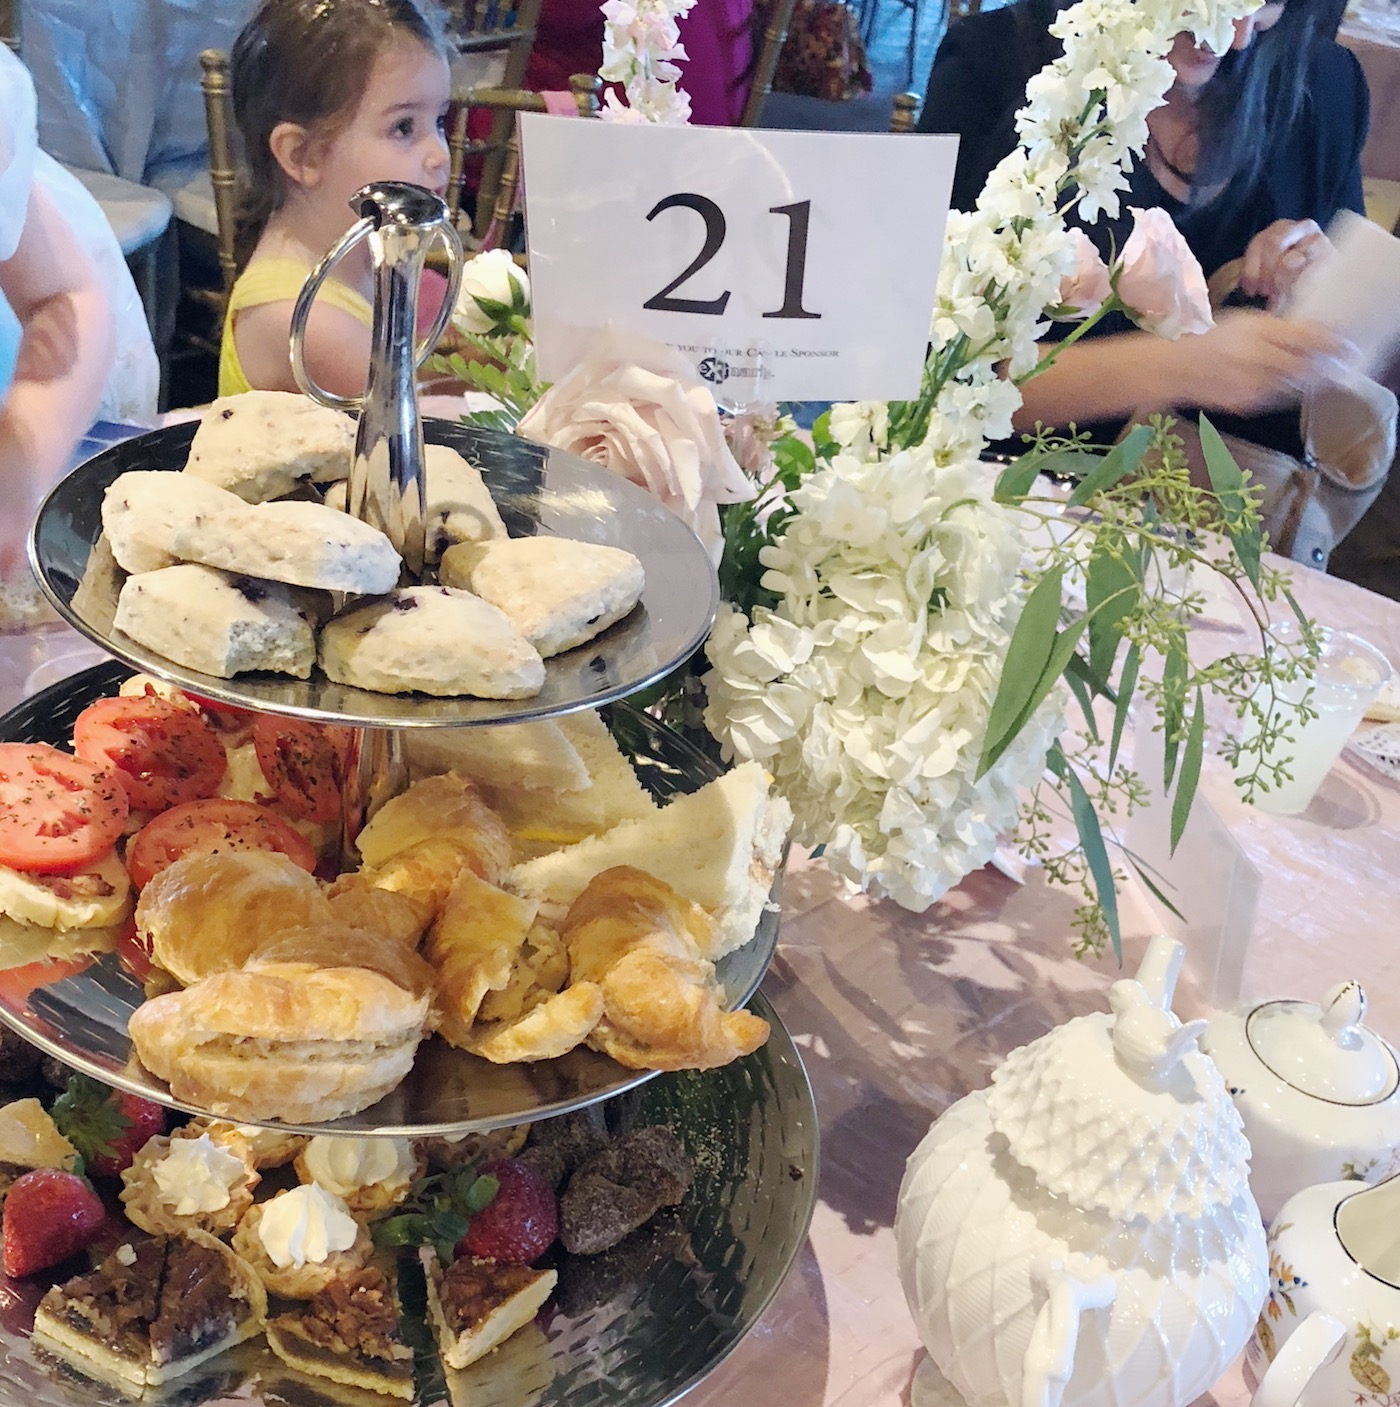 Fairytale Princess Tea in Jackson, MS